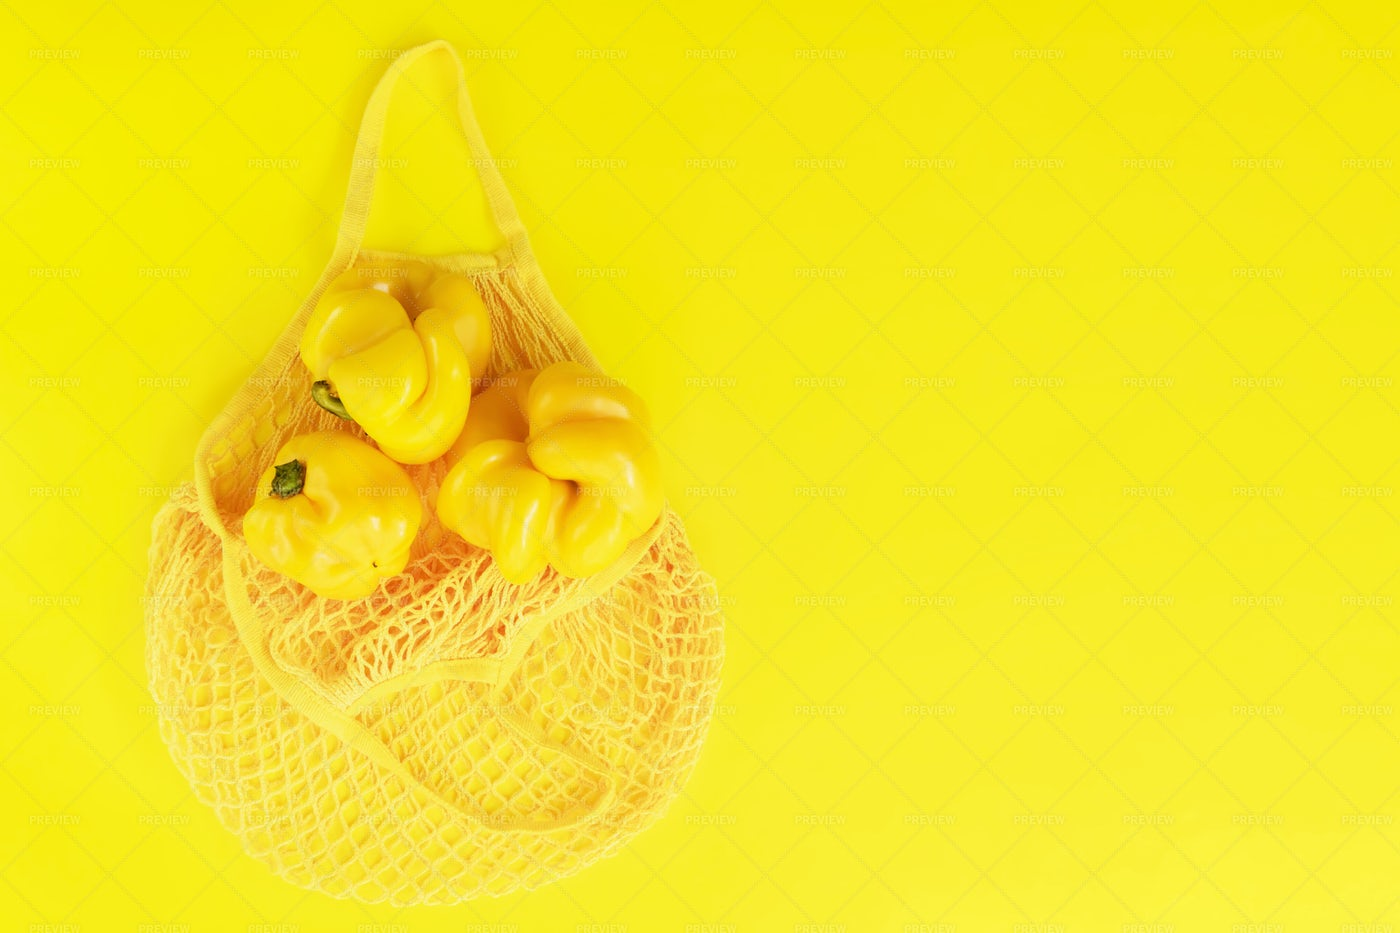 Yellow Peppers In Bag: Stock Photos